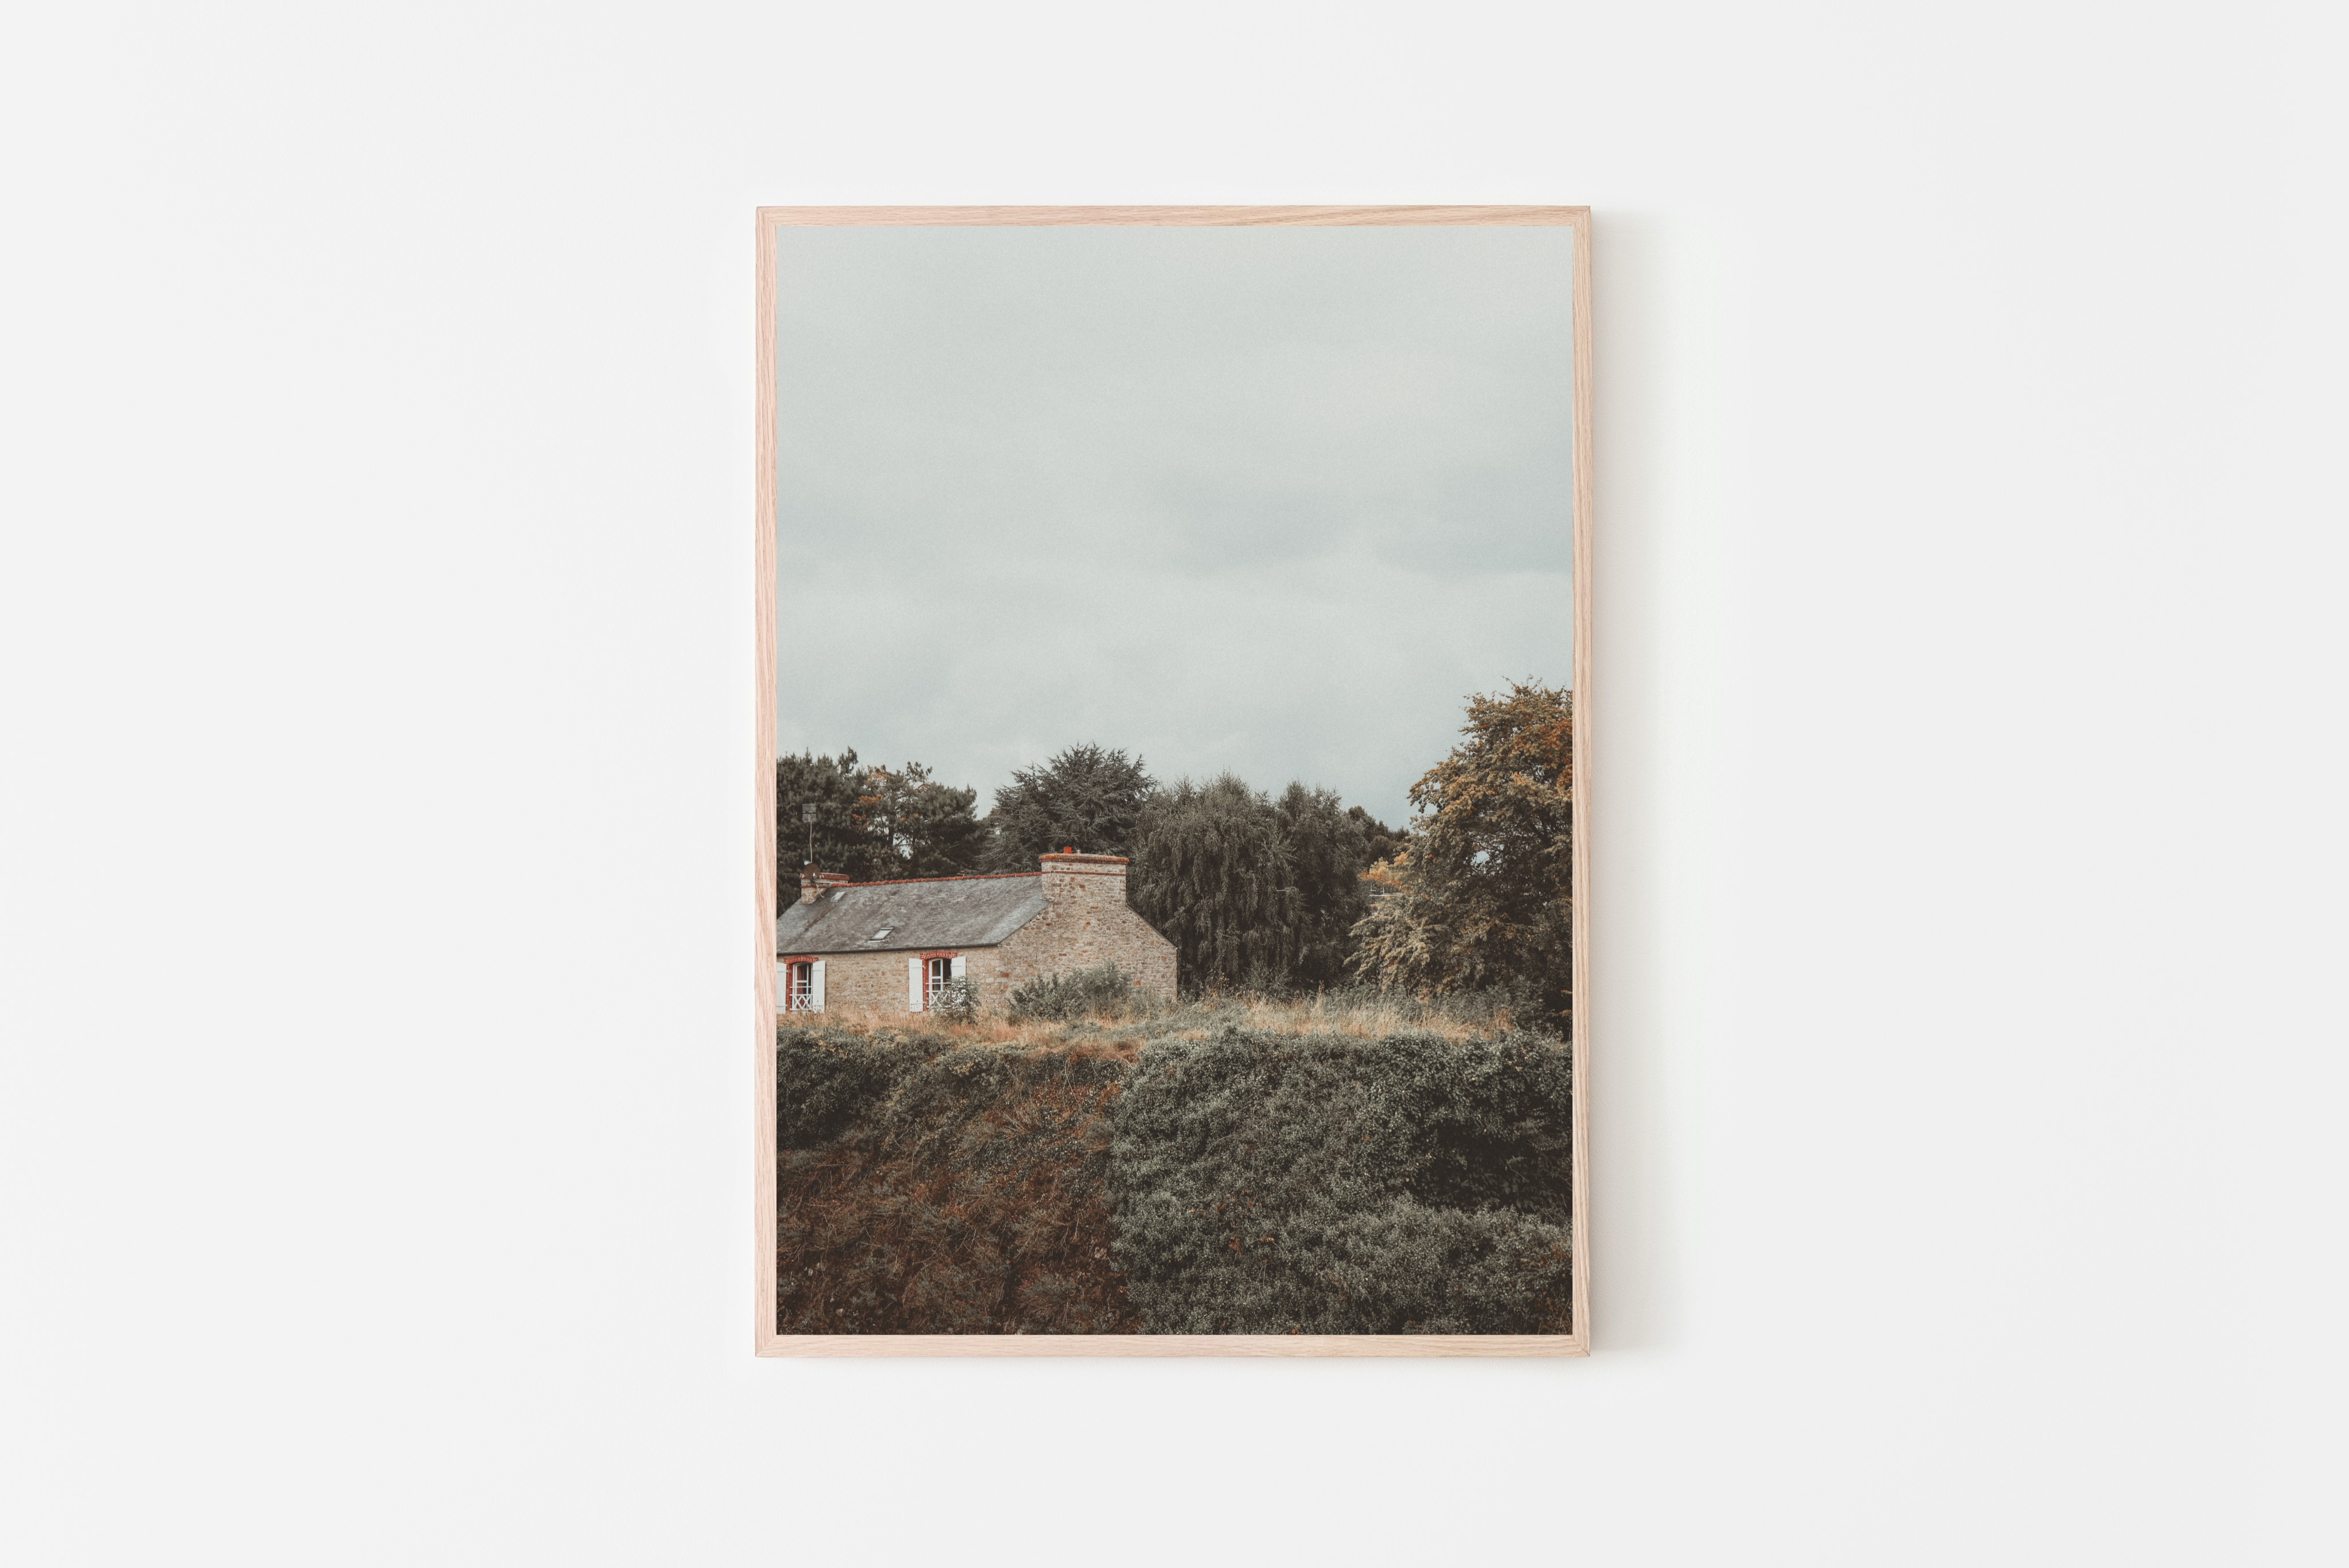 small village brittany france wall print